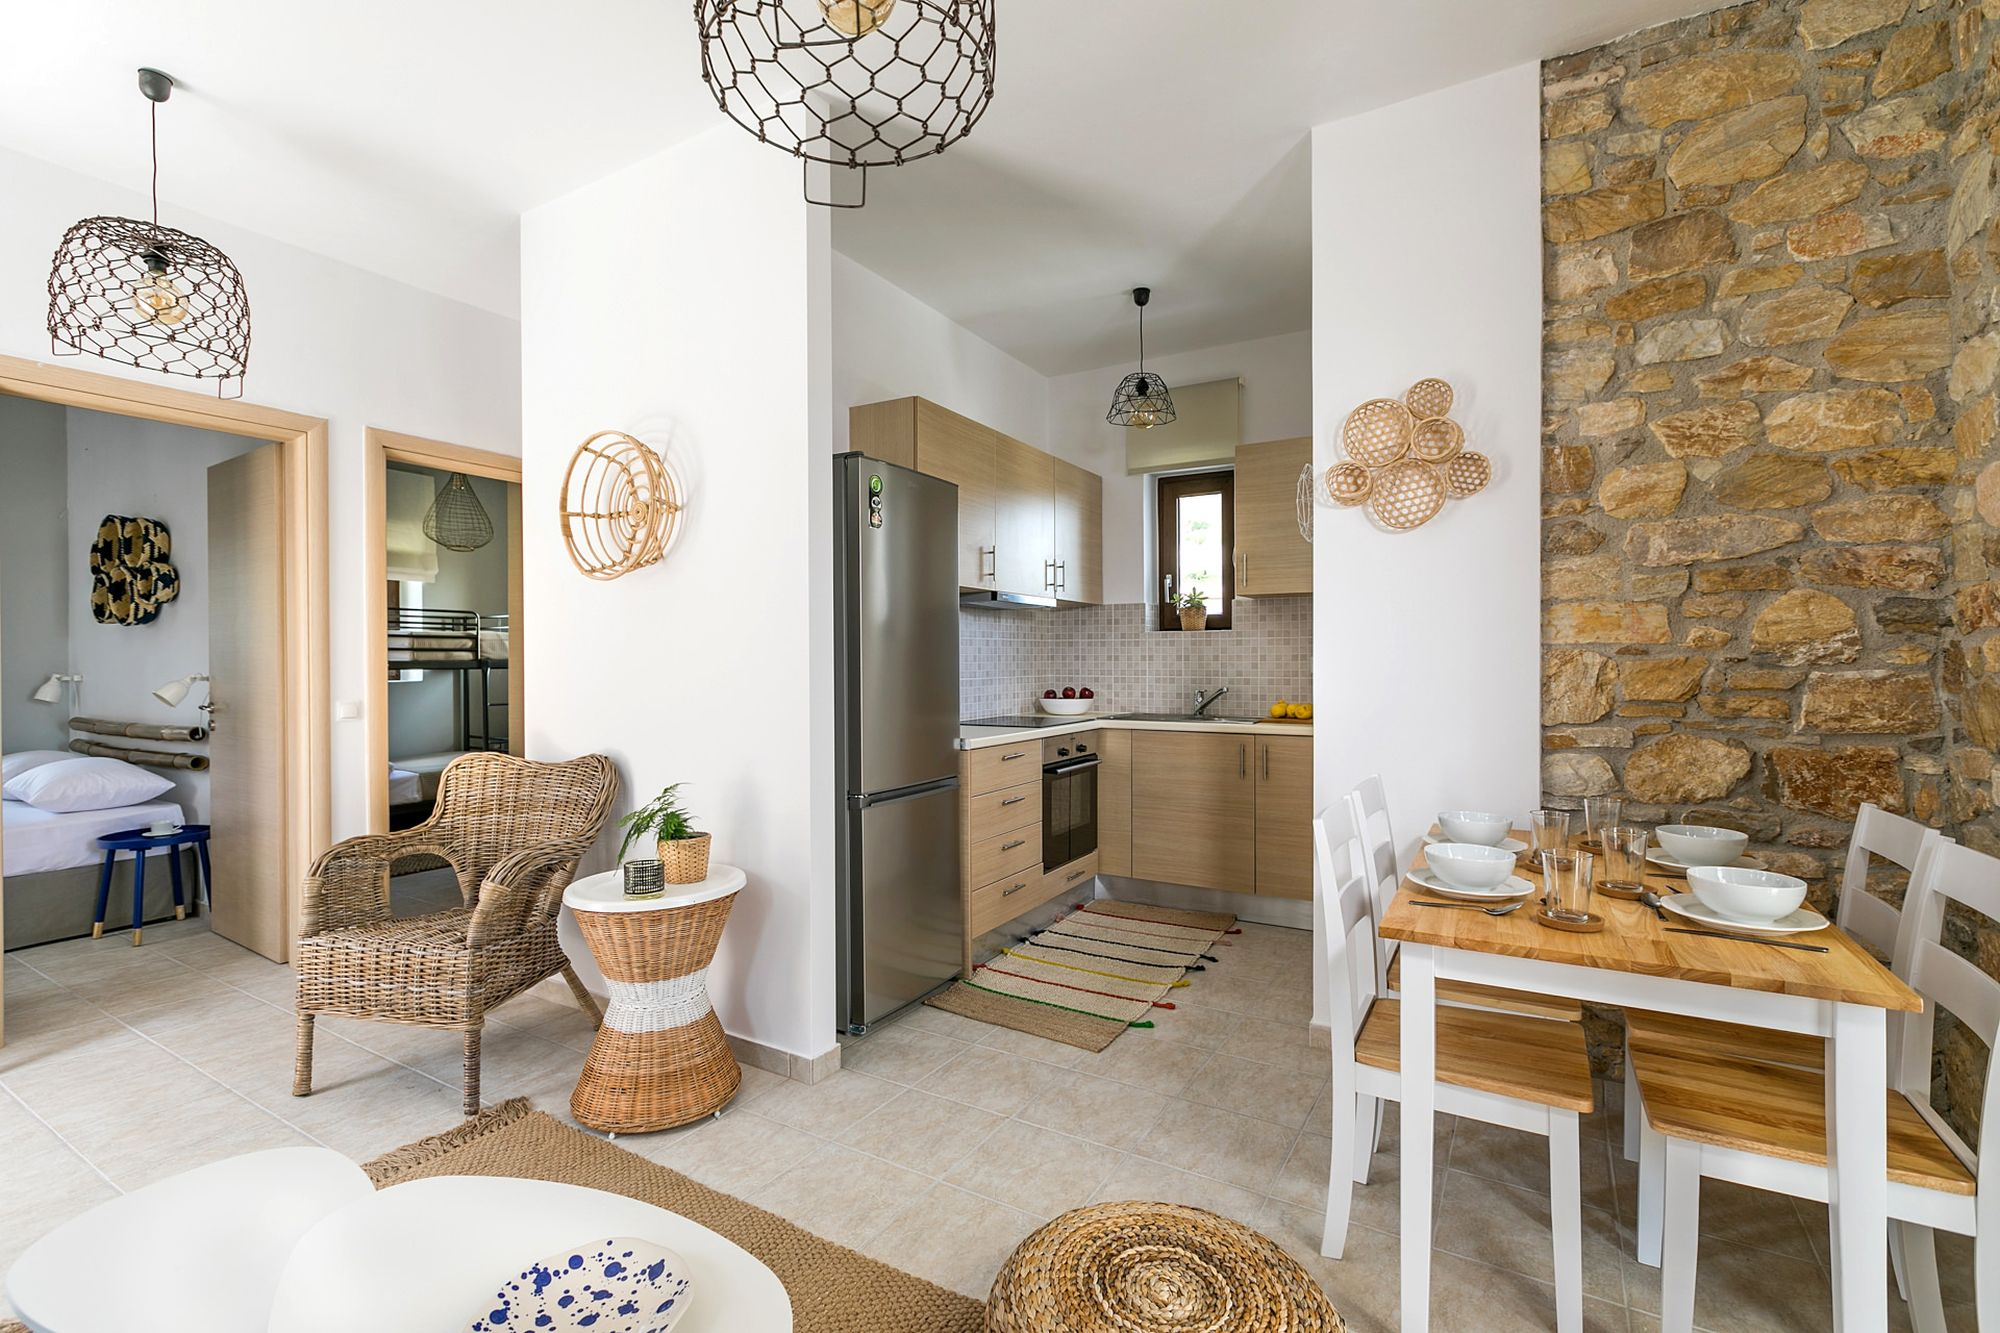 A stone-built residence decorated in boho style with two bedrooms, one with a double bed and a second one with bunk beds, a kitchen and a dining table with four chairs.